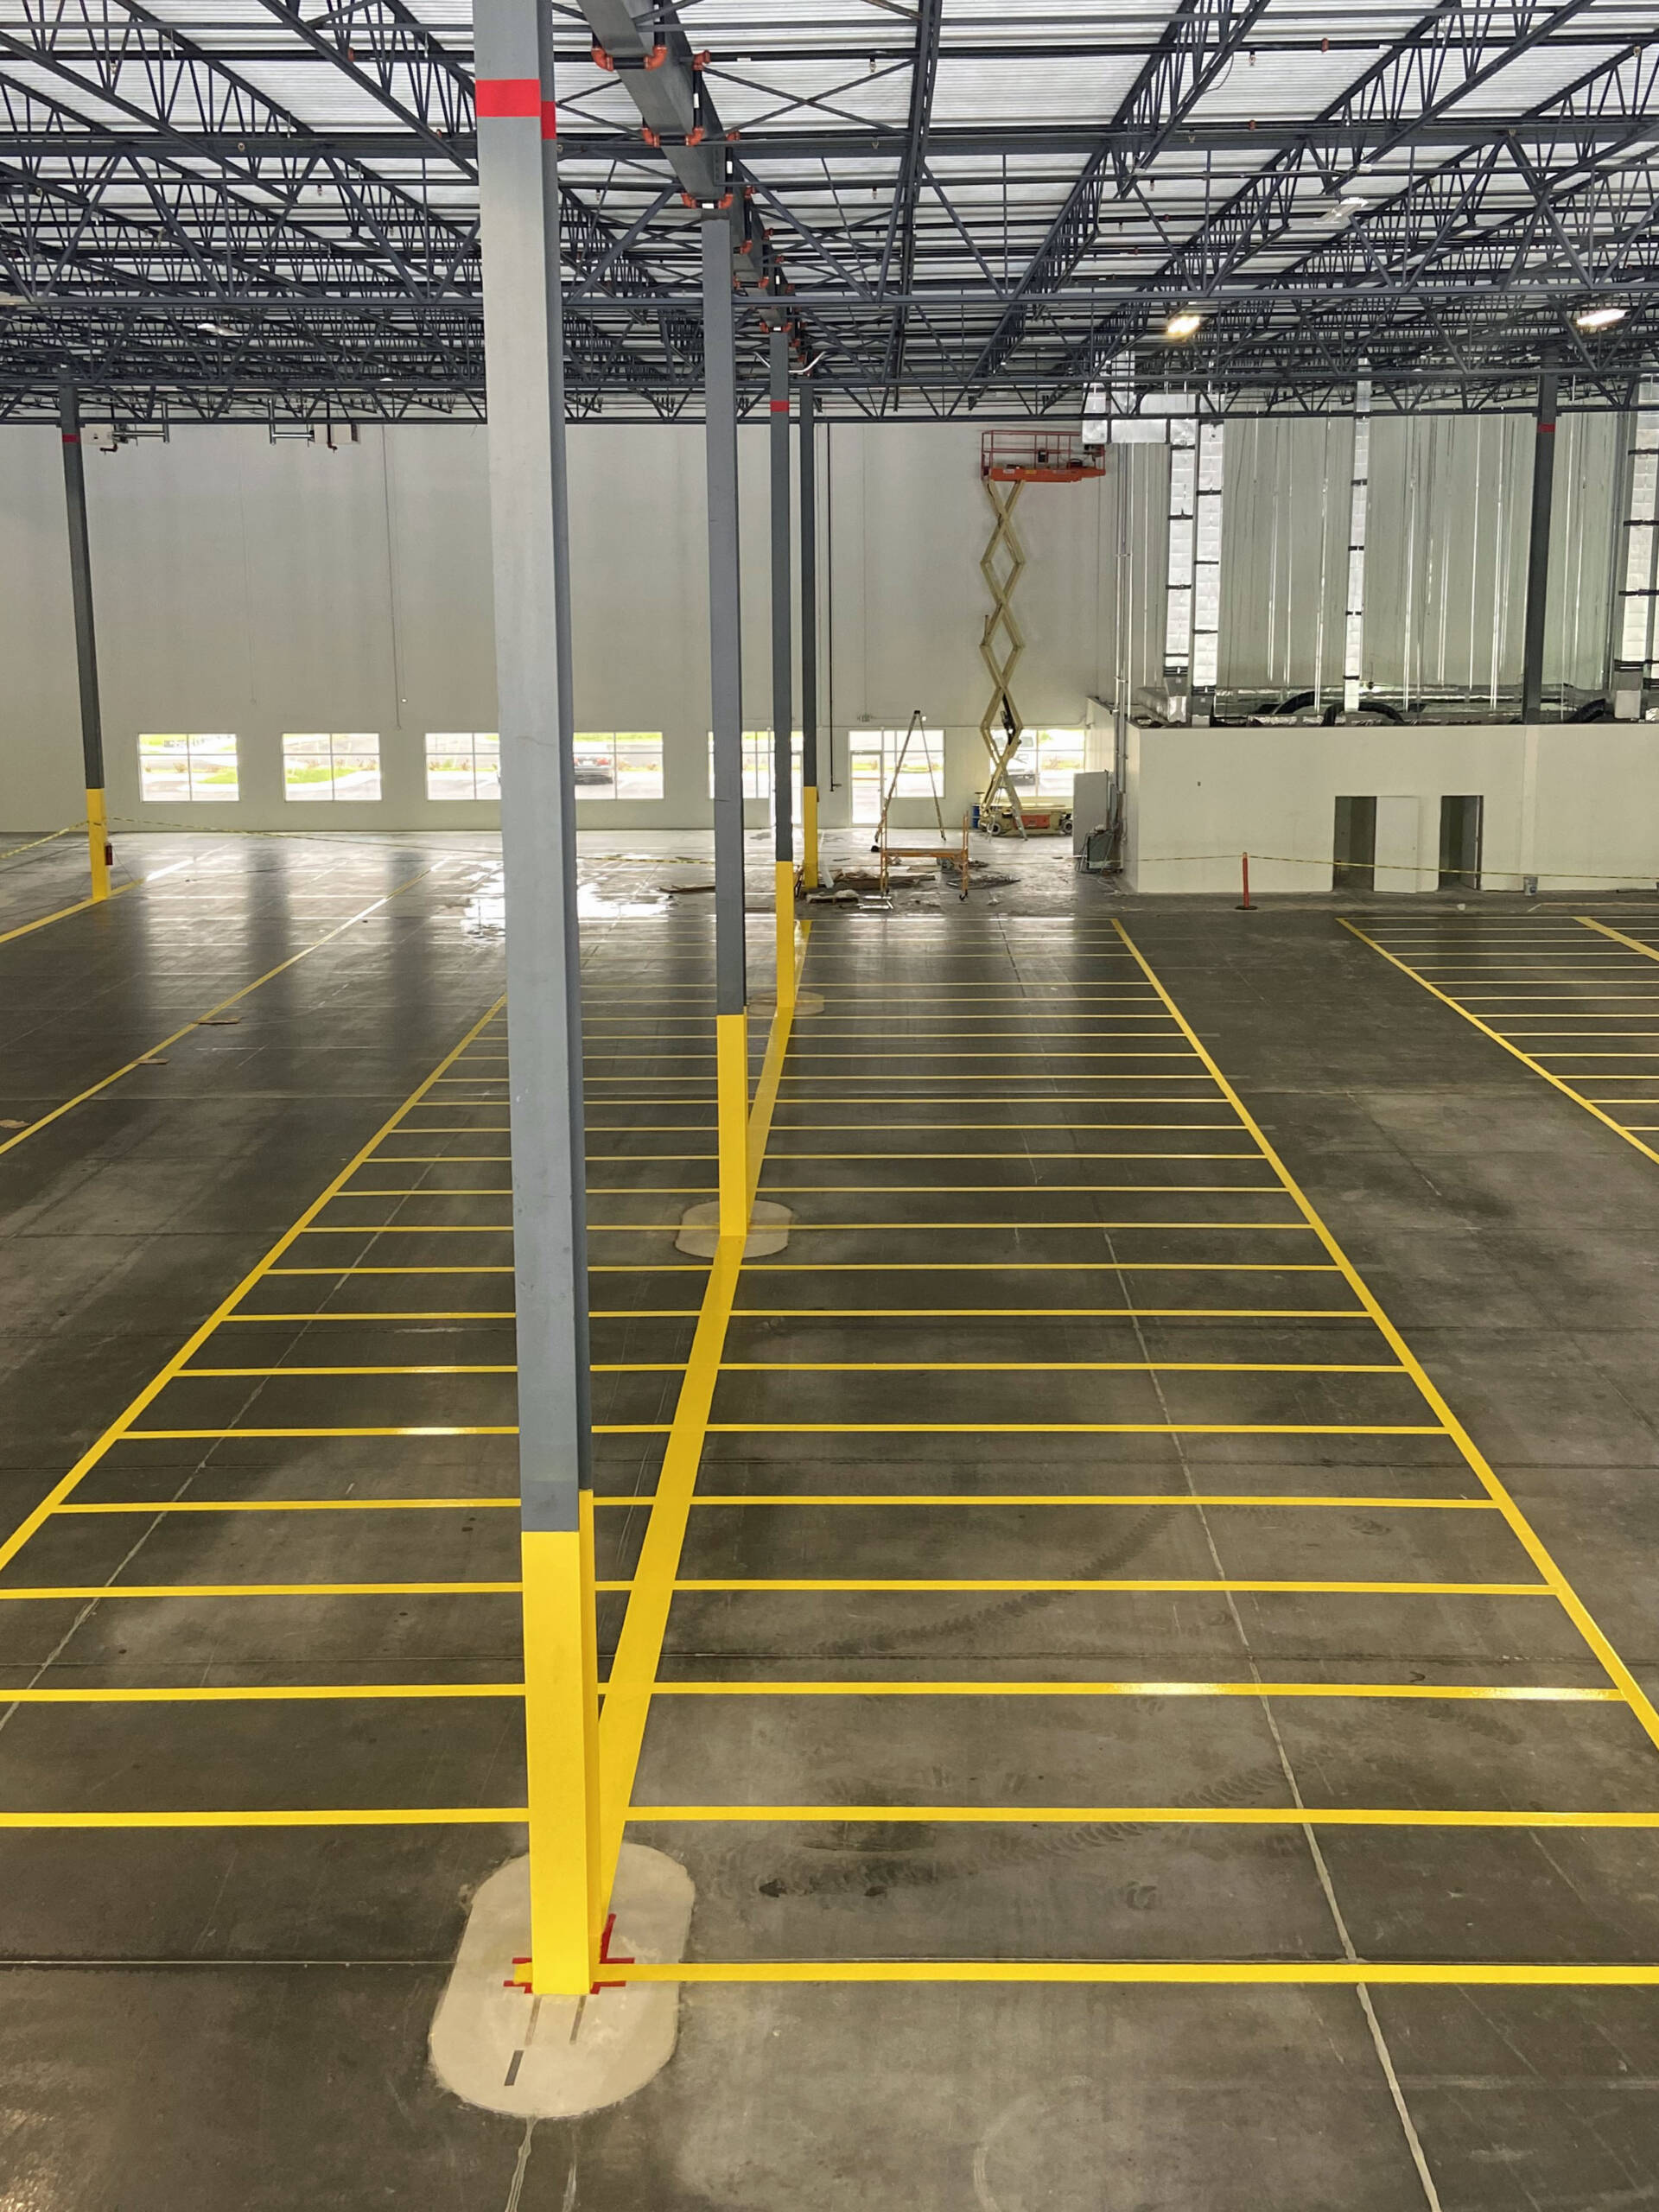 Warehouse Floor lines from above